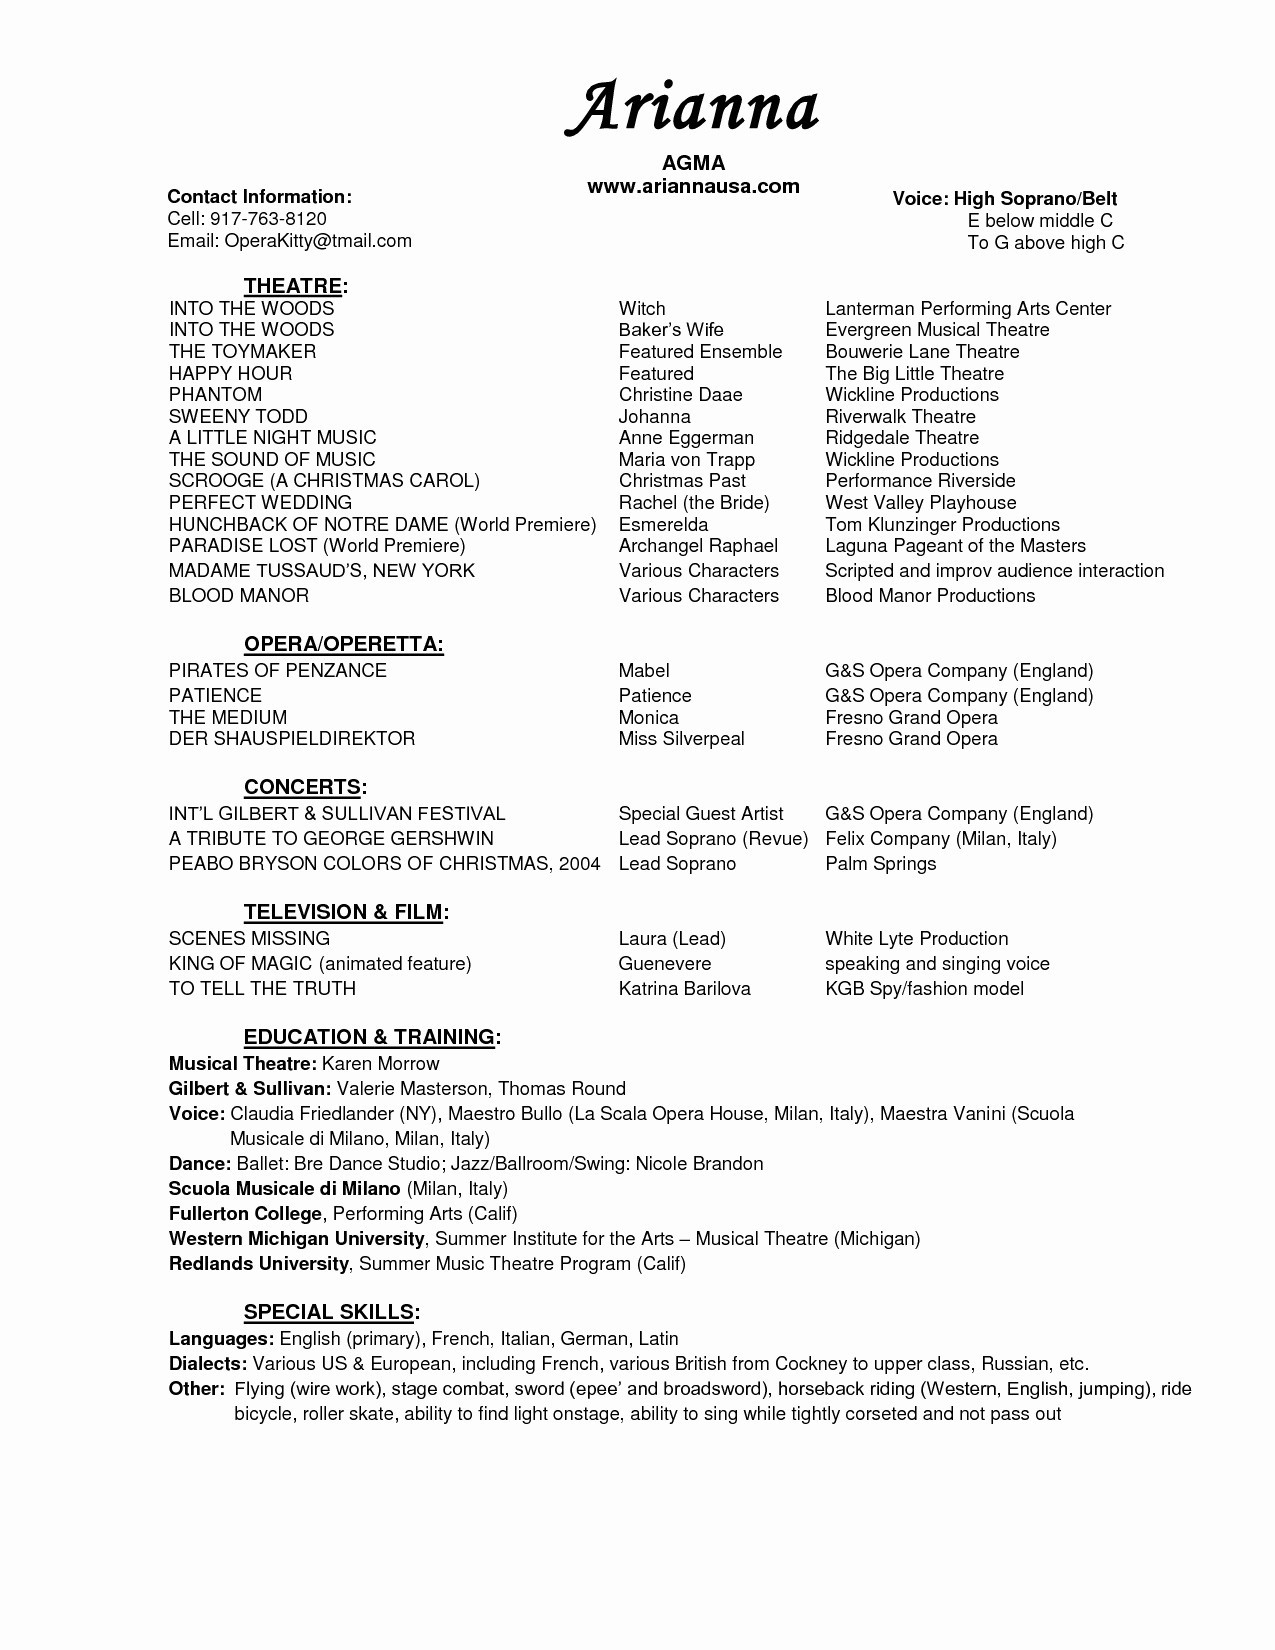 opera resume template Collection-Artistic Resume Template Save Musicians Resume Template Save Musical Theatre Resume Template 19-t